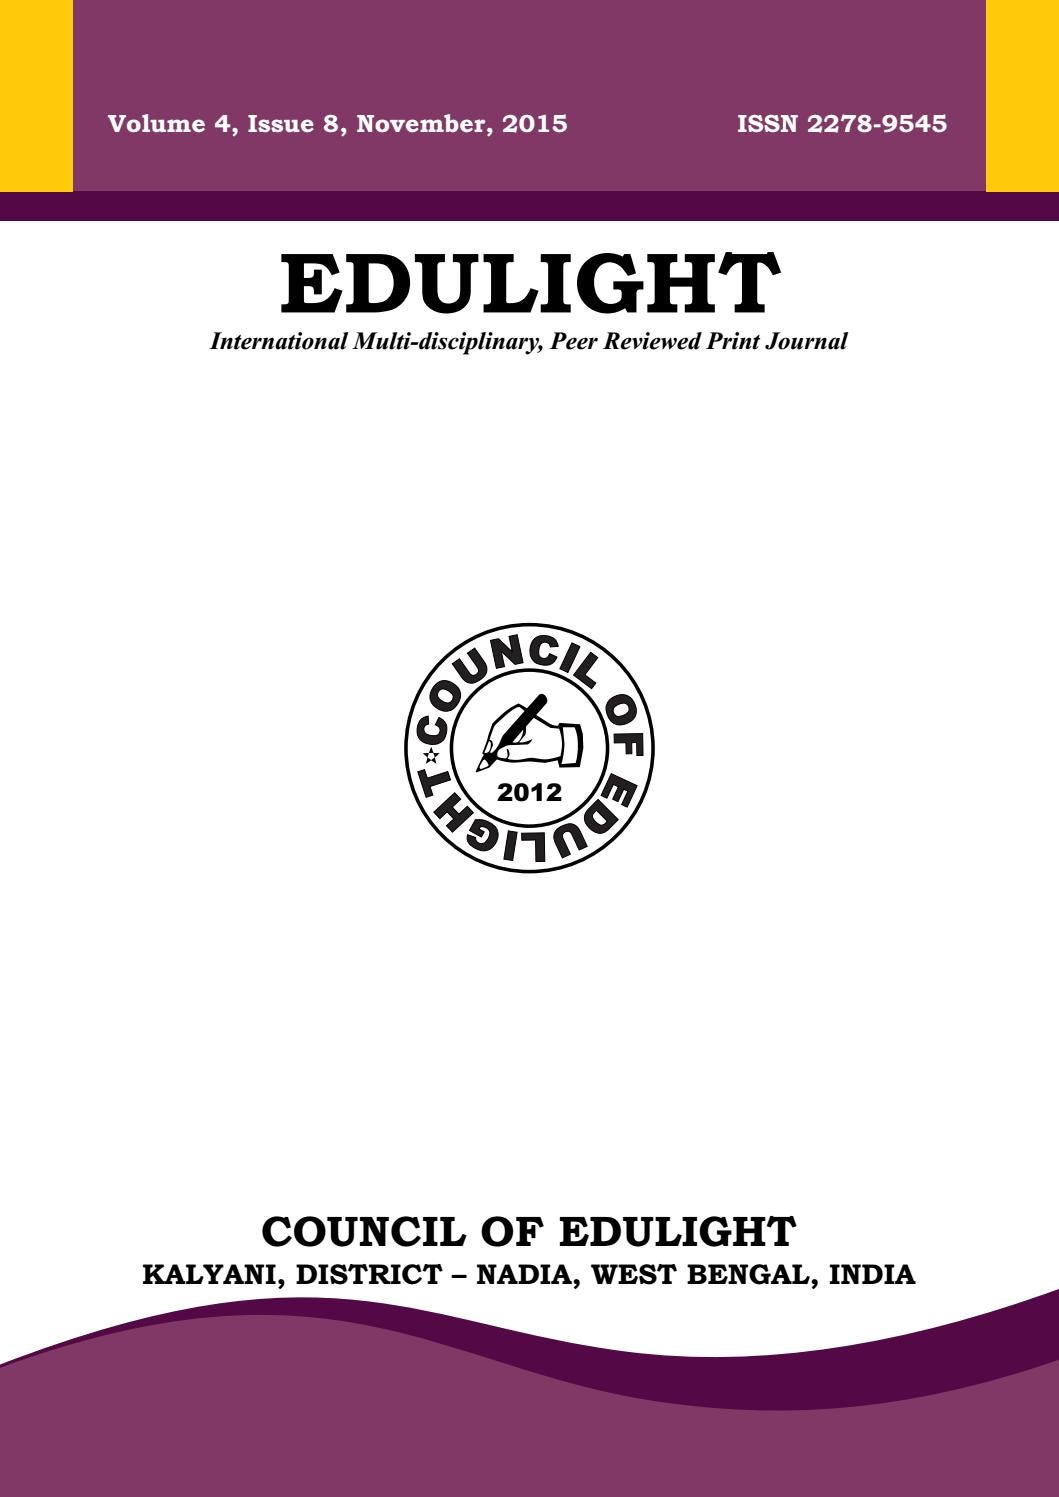 Edulight Volume 4 Issue 8 Nov 2015 By Edulight Journal Issuu Provide examples of types of nonverbal communication that fall under these categories. issuu